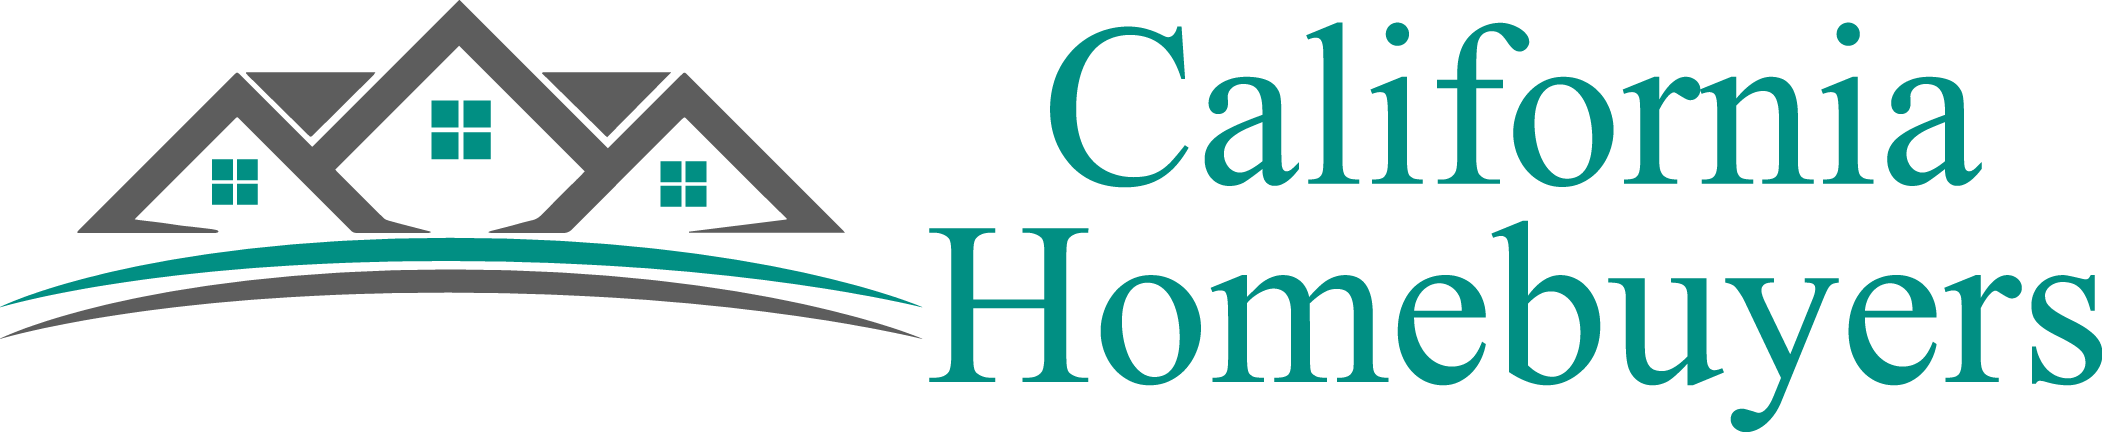 California Homebuyers logo